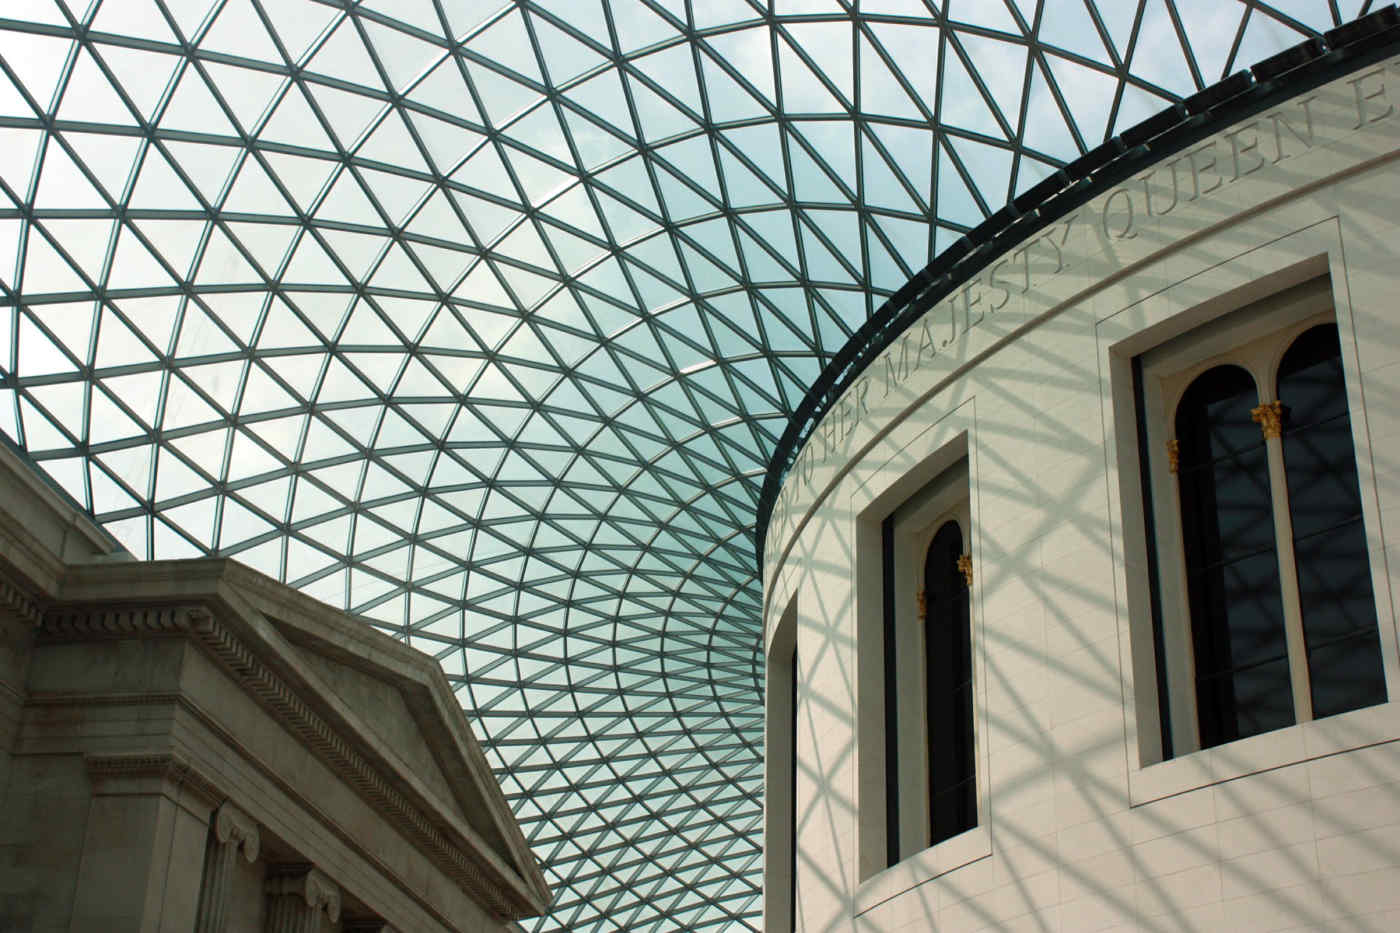 British Museum • London, England